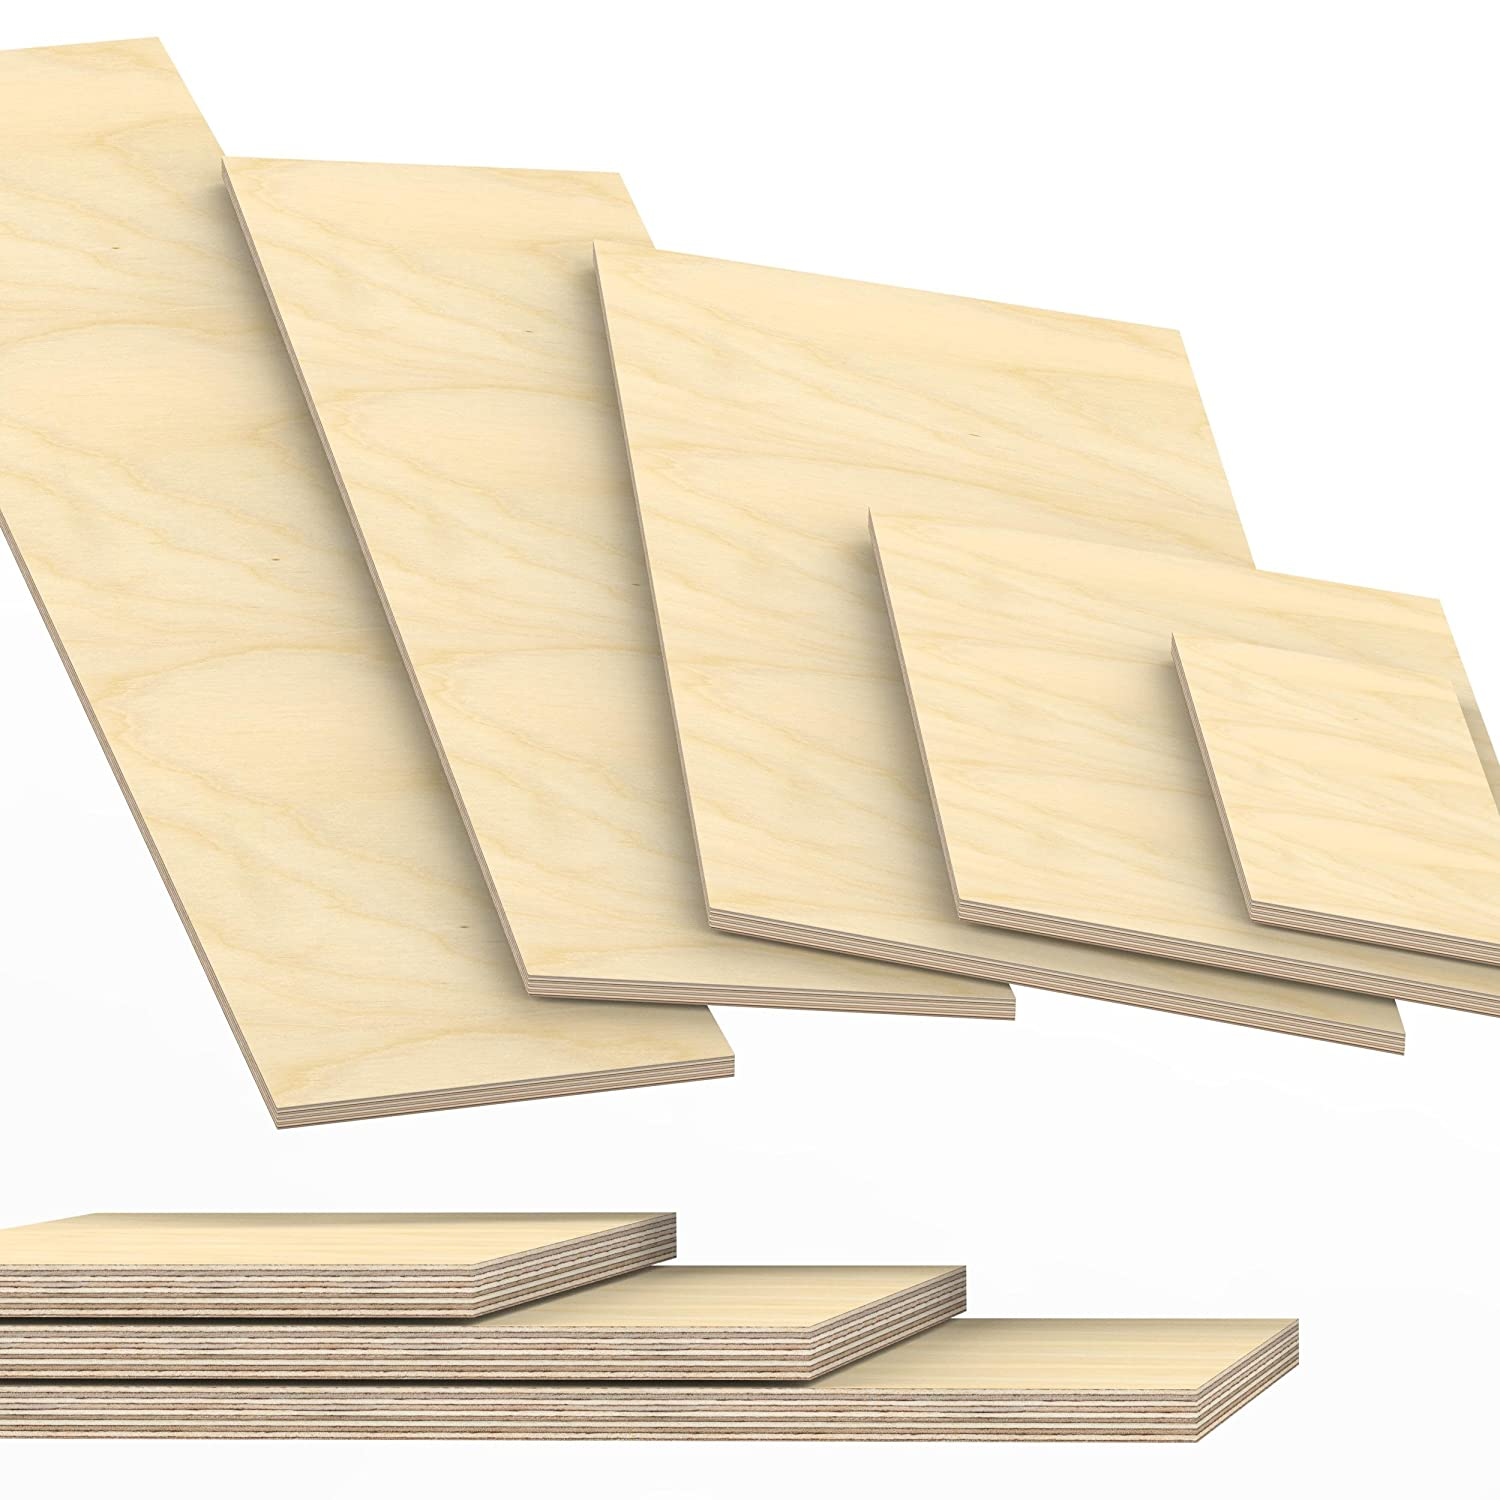 18mm Plywood Sheets cut to size up to 200 cm length multiplex board cuttings: 100x30 cm AUPROTEC